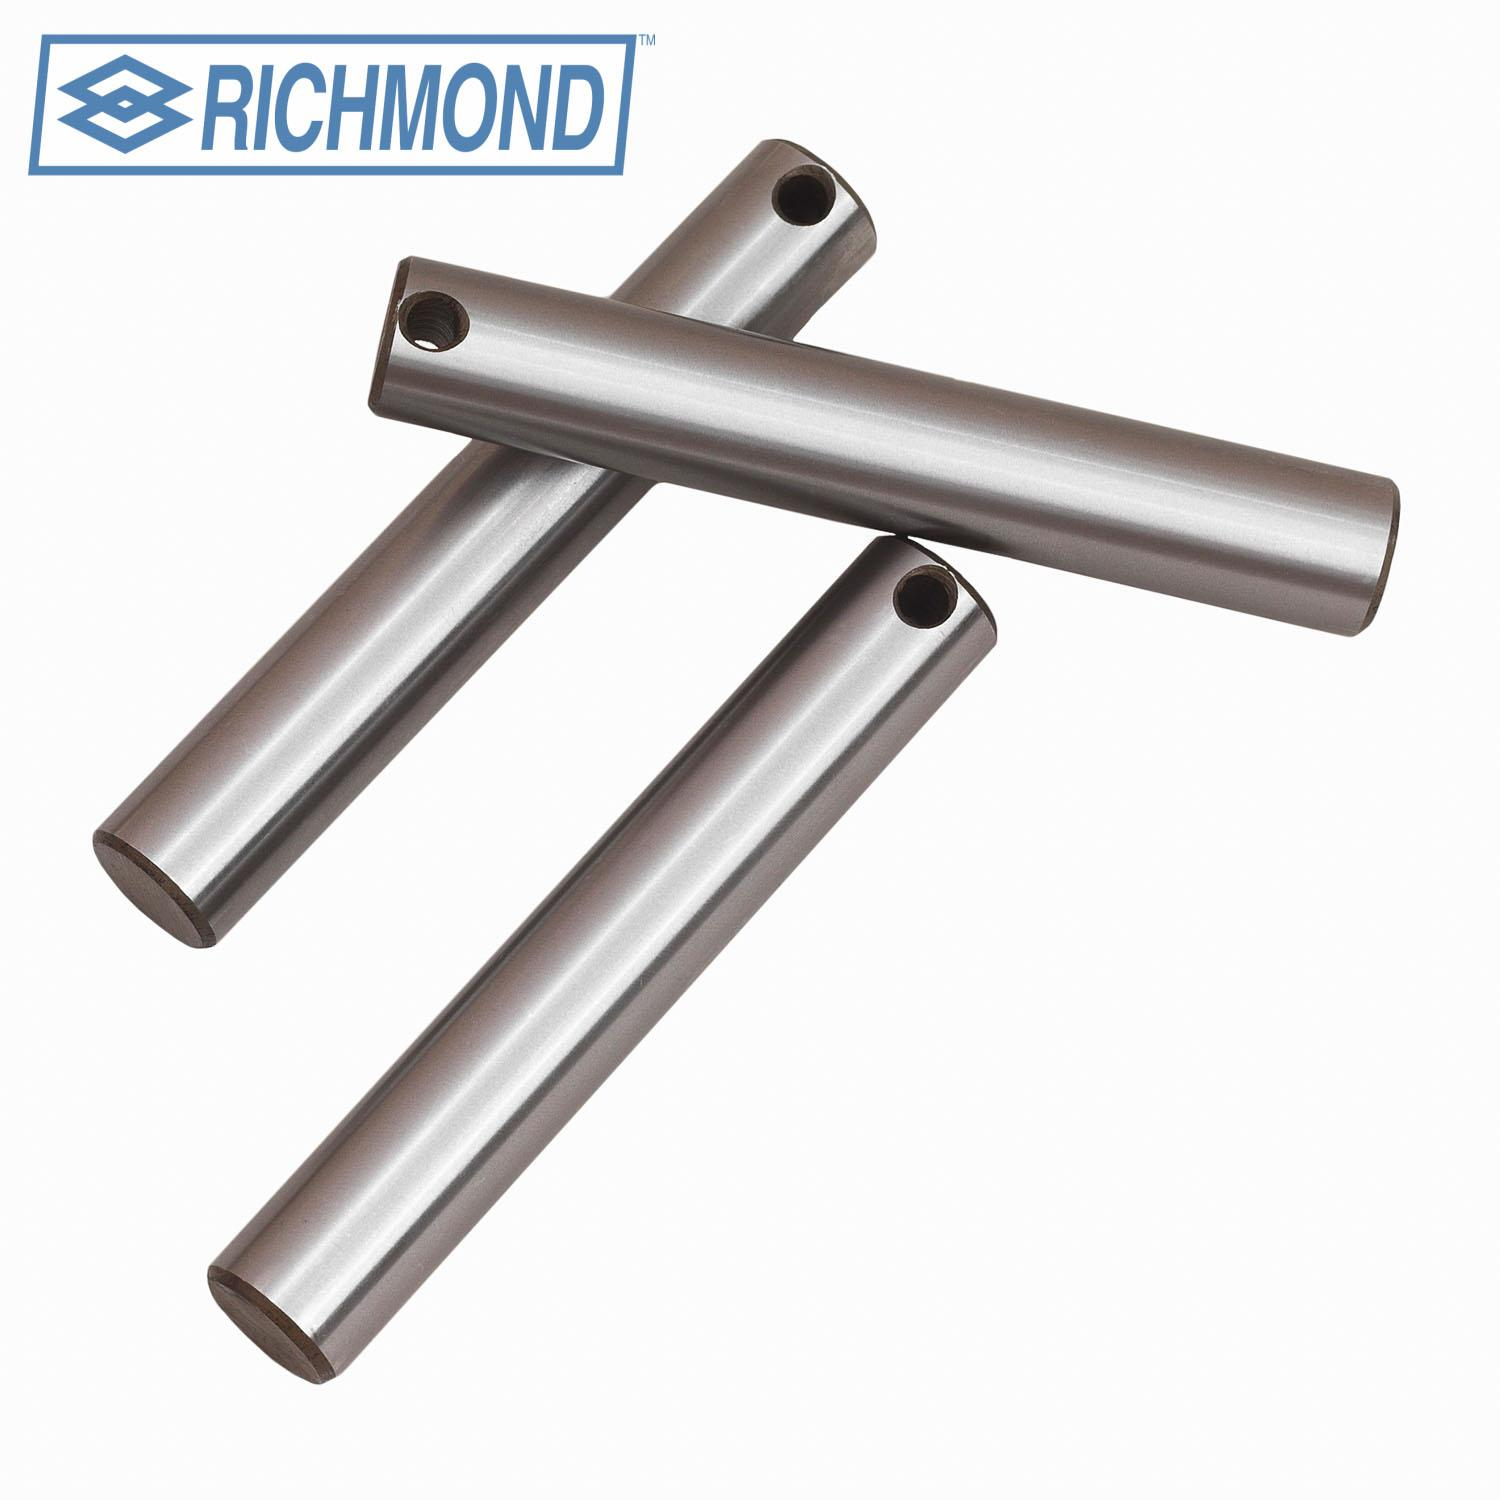 CSPGM85 Richmond Gear Differential Cross Pin For Use With GM 8.5 Inch